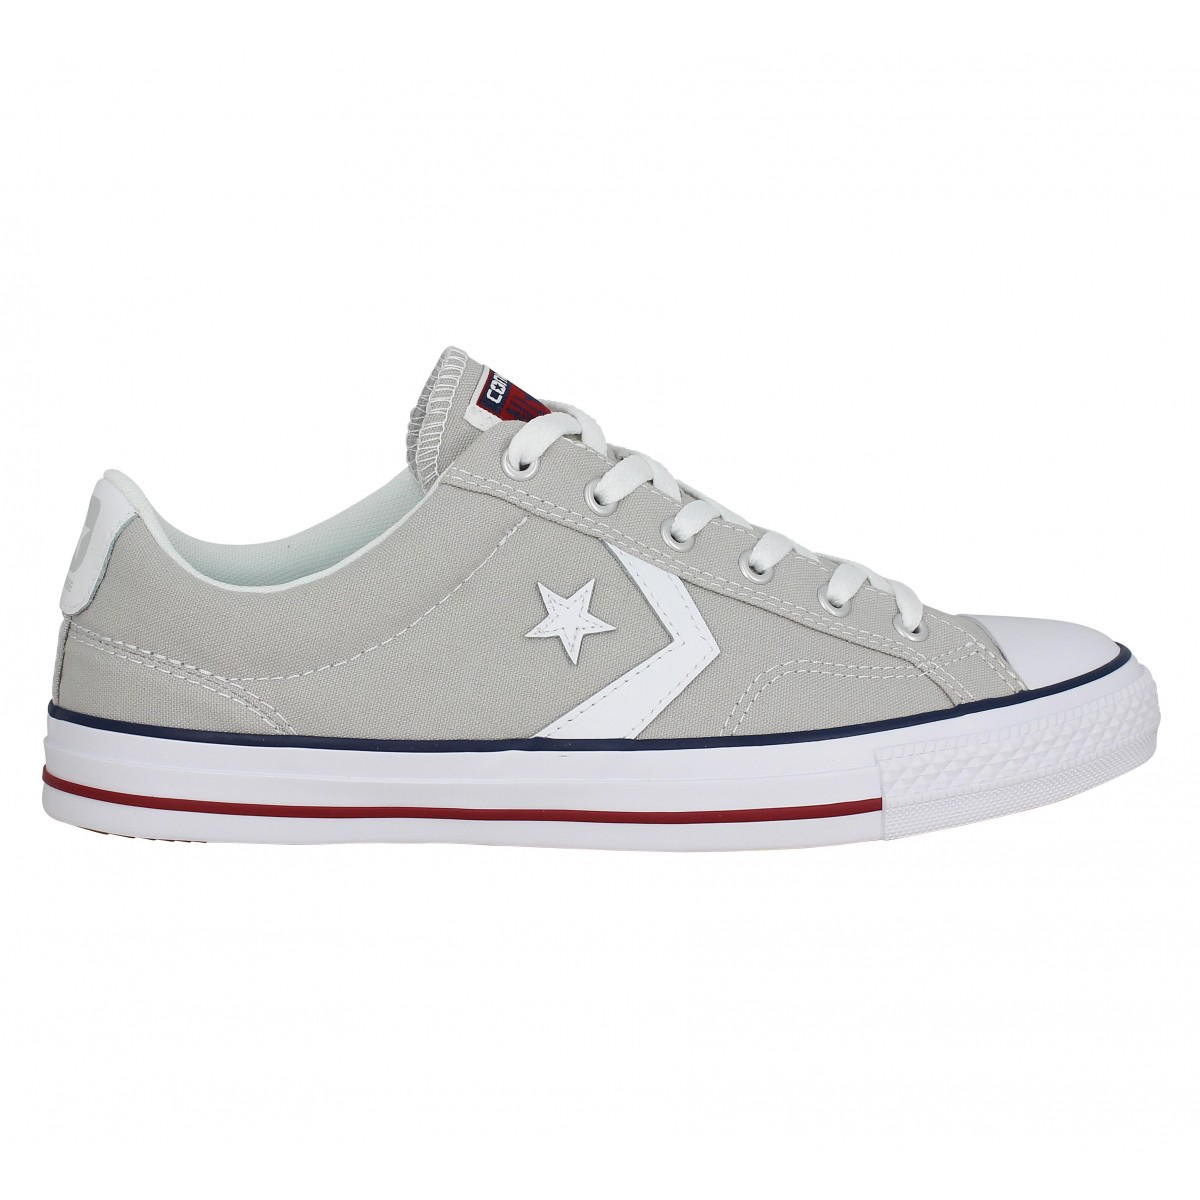 soldes converse star player toile homme gris homme fanny chaussures. Black Bedroom Furniture Sets. Home Design Ideas